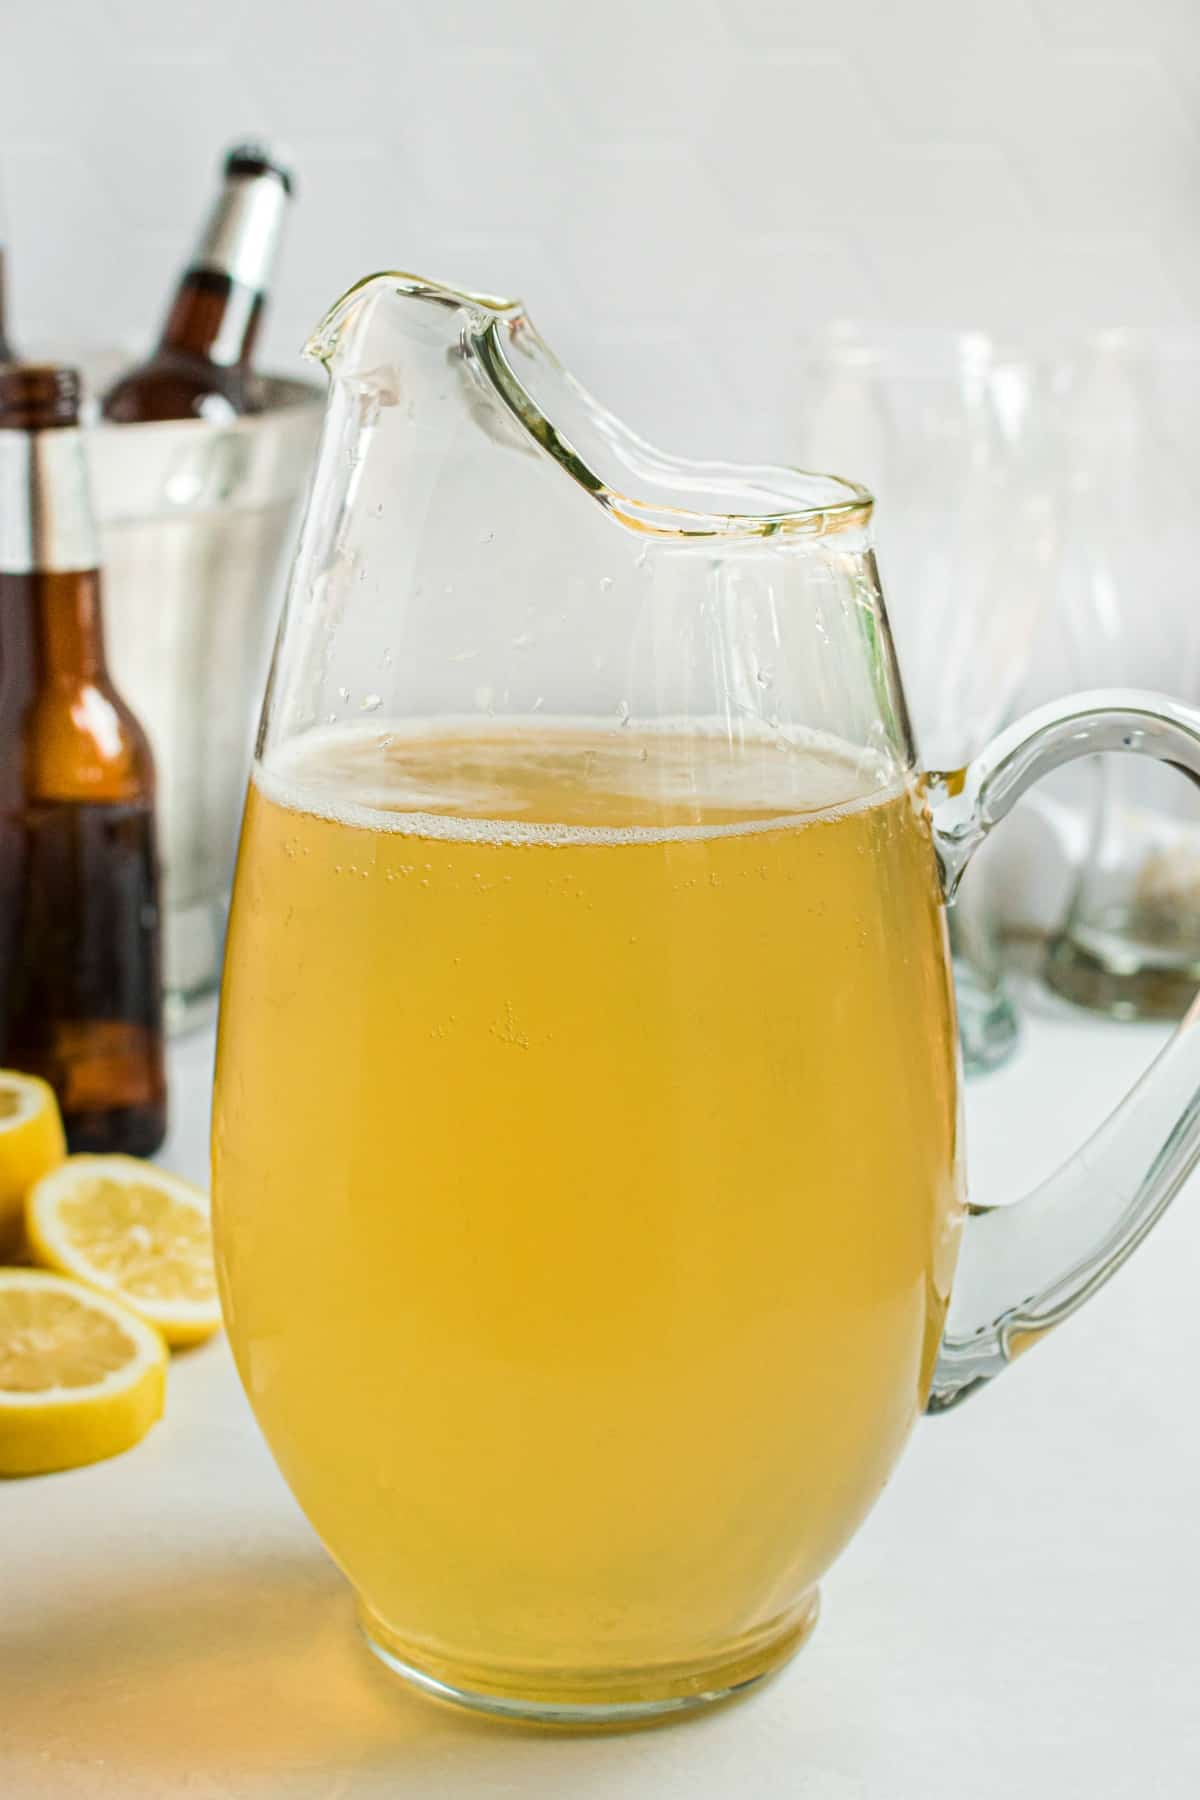 Clear glass pitcher of homemade lemon shandy with bottles of beer in background.